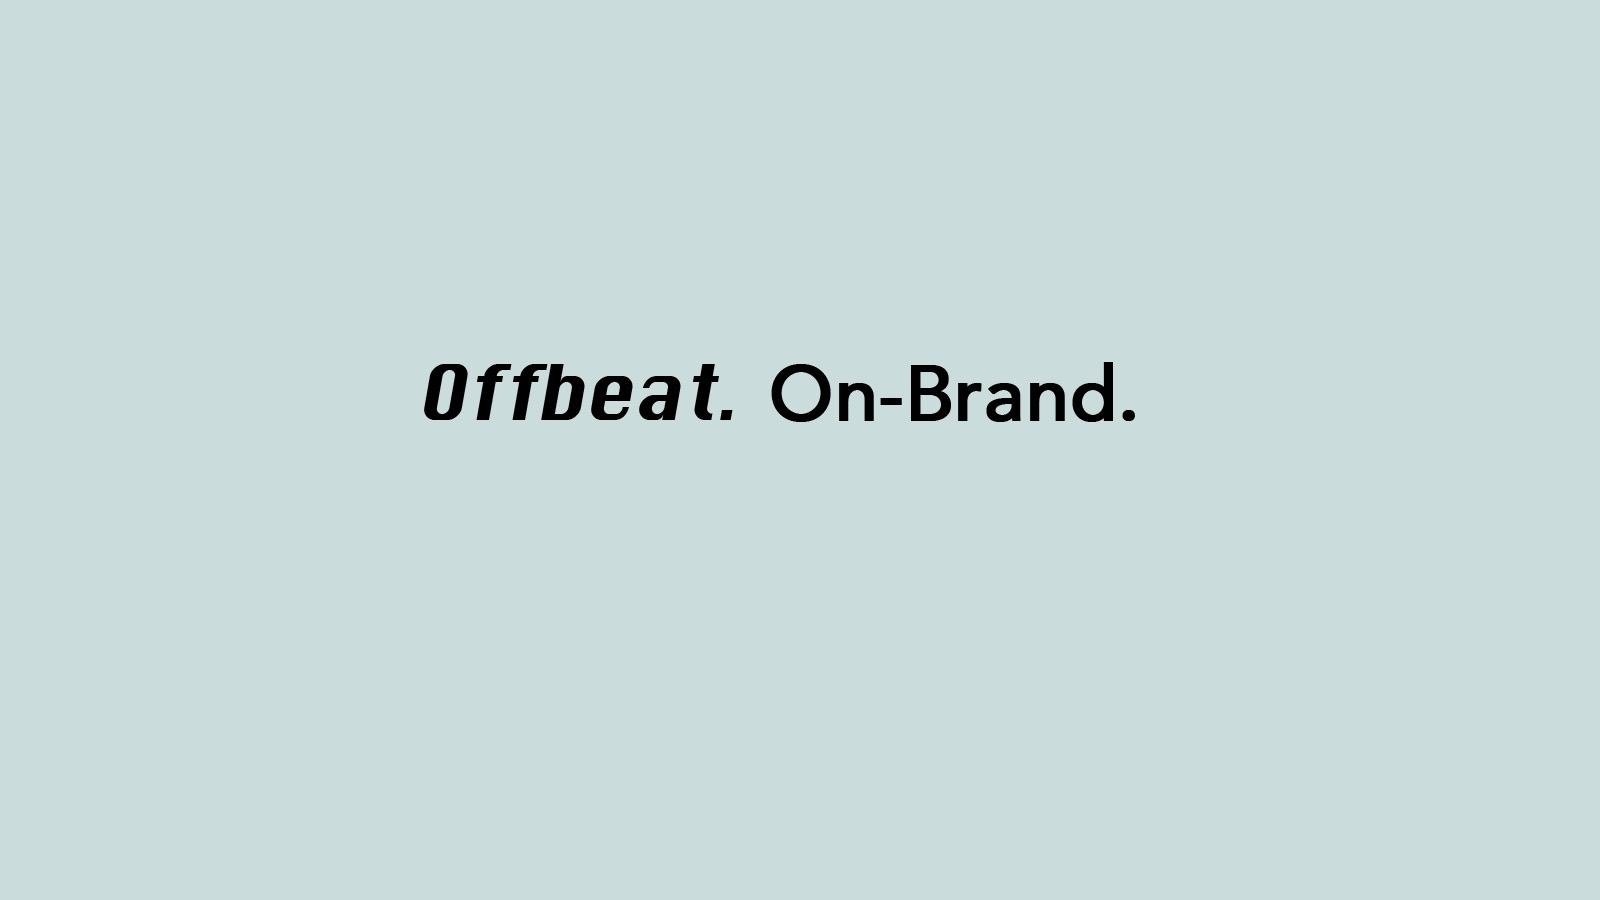 Offbeat sample-1.jpg